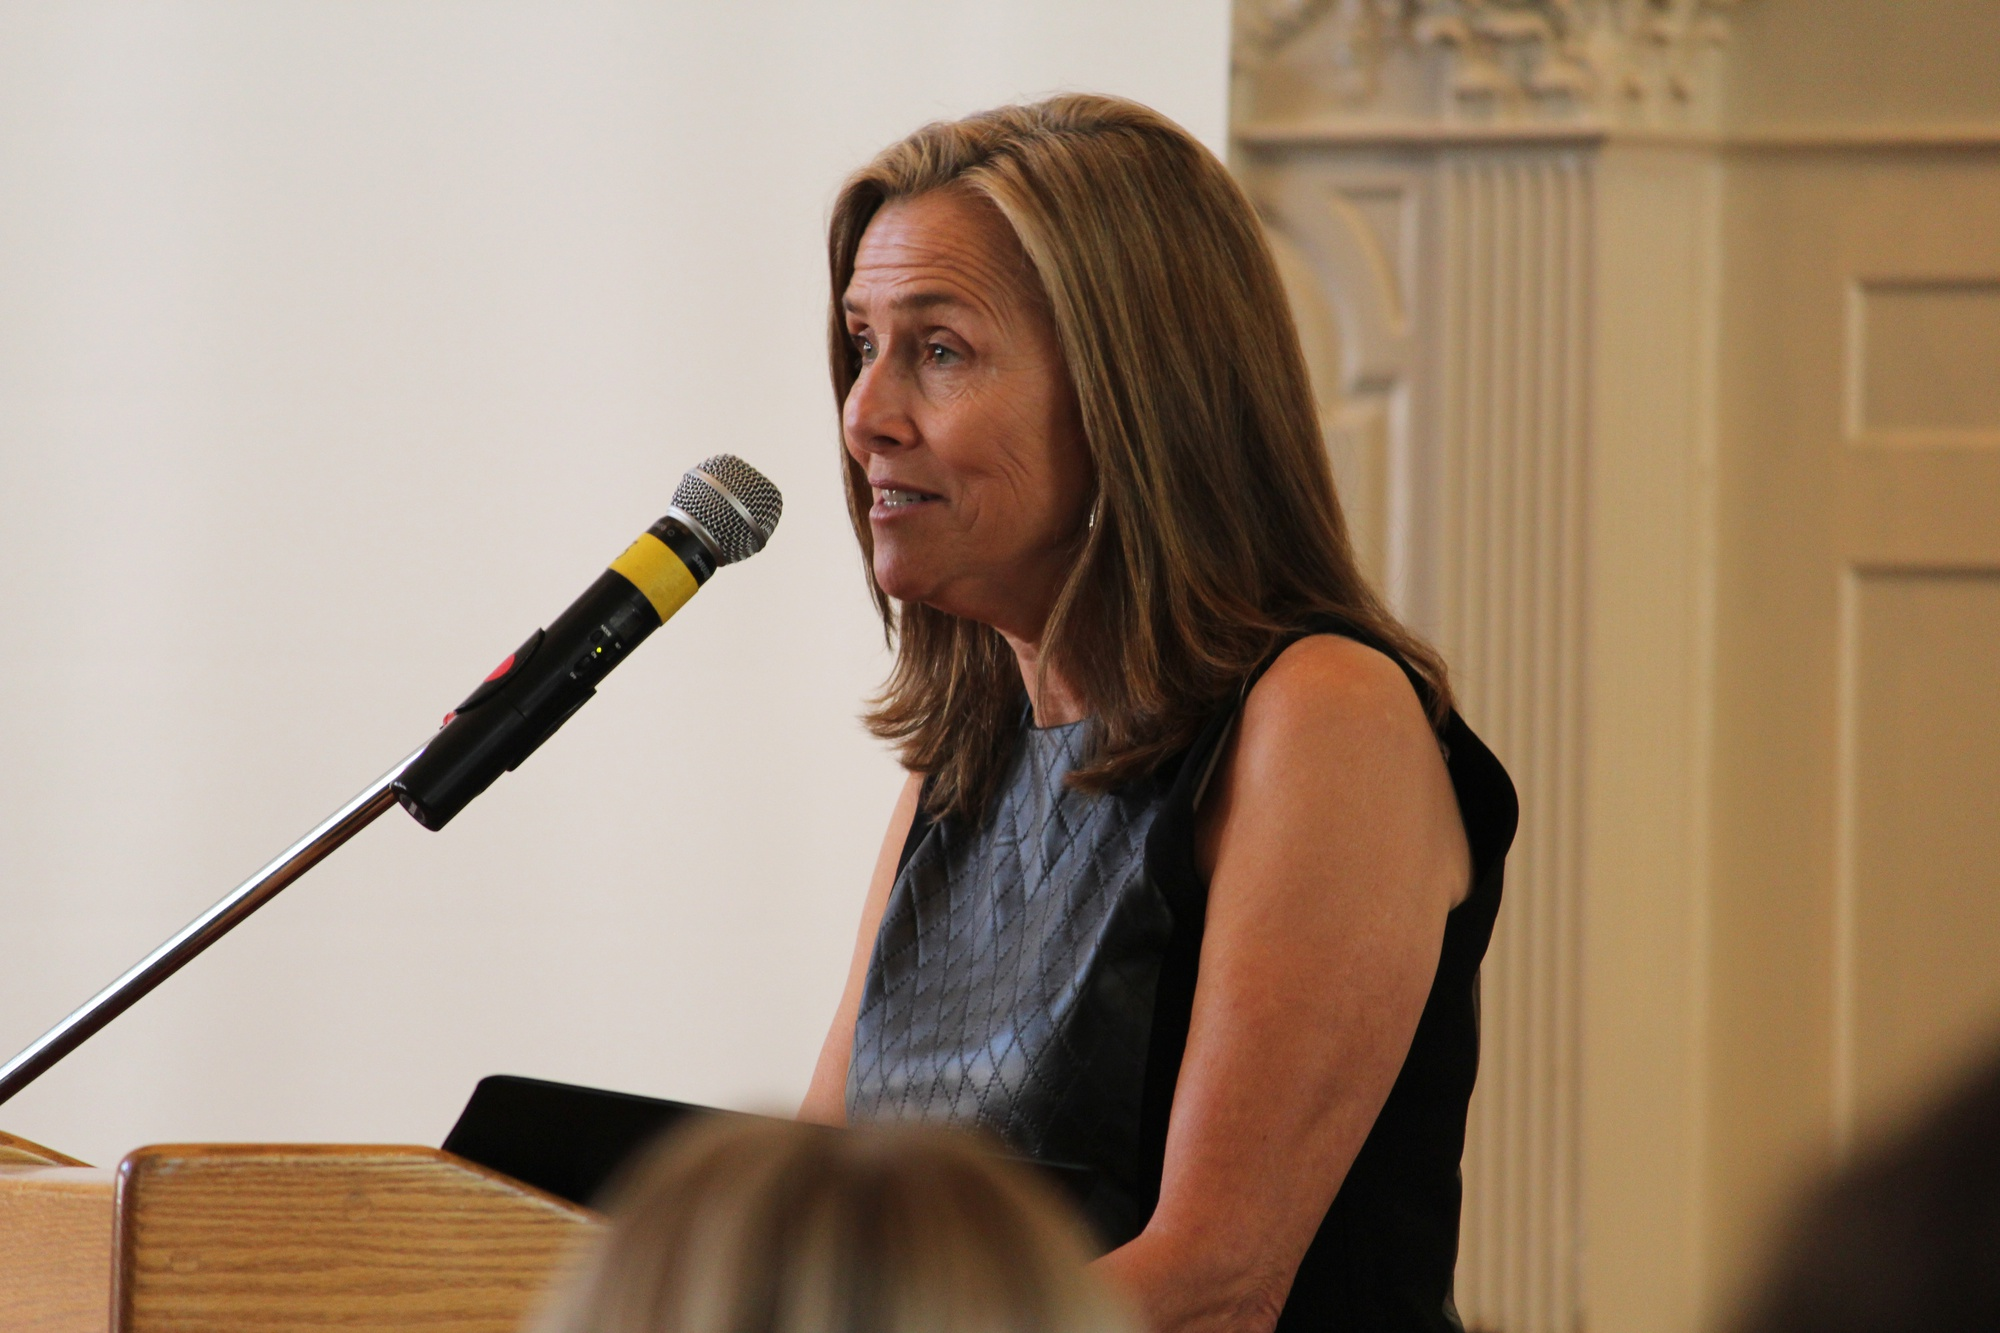 Meredith Viera, journalist and TV personality, hosts the Alzheimer's Symposium on Saturday.  The event was organized by Alzheimer's Buddies, a group on campus that meets weekly with patients affected by Alzheimer's.